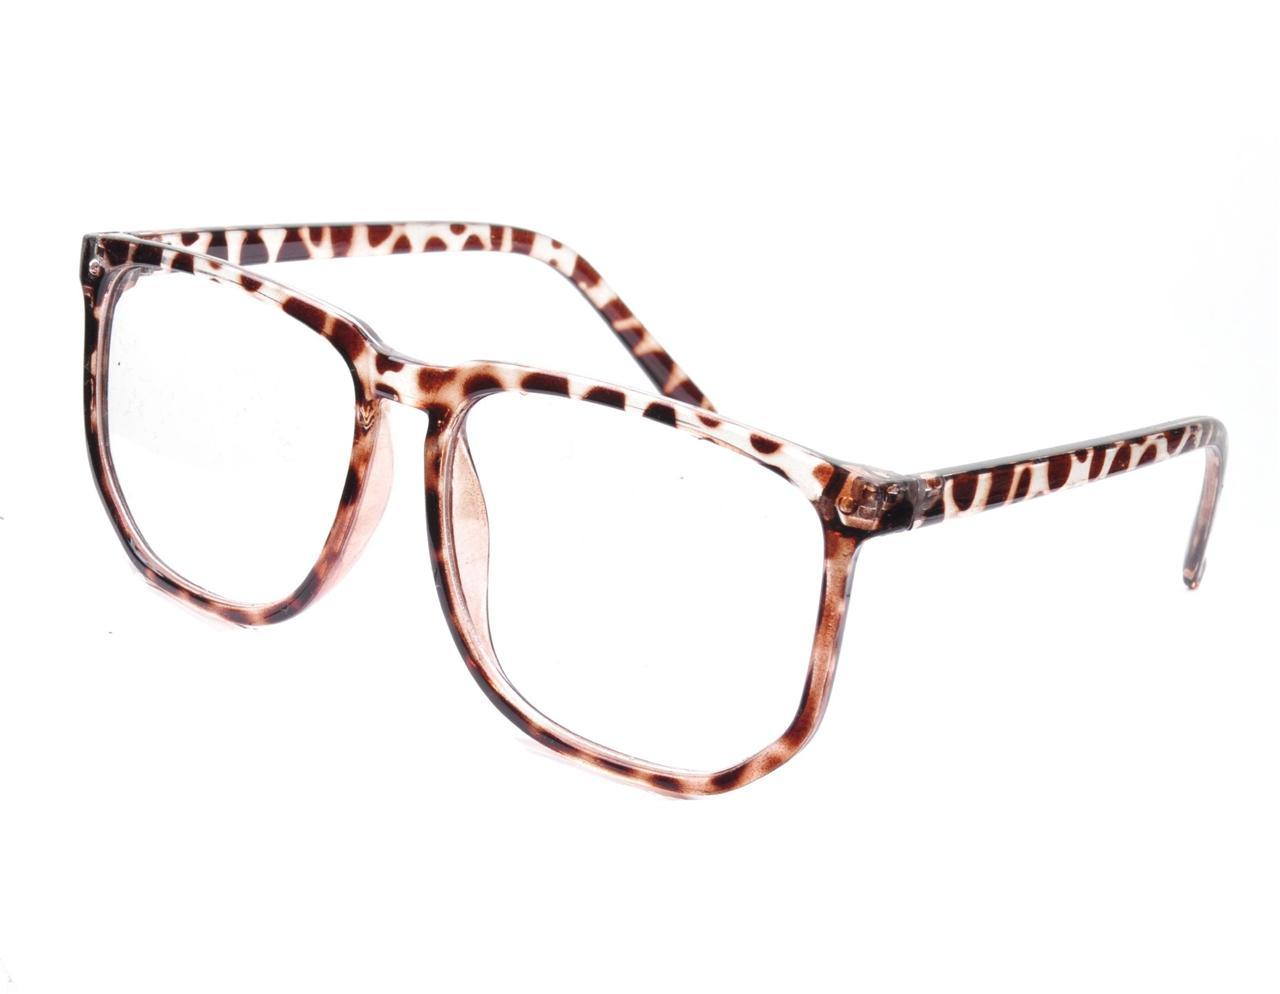 EUGENE Oversized Clear Lens Tortoiseshell Geek Glasses - Minimum Mouse